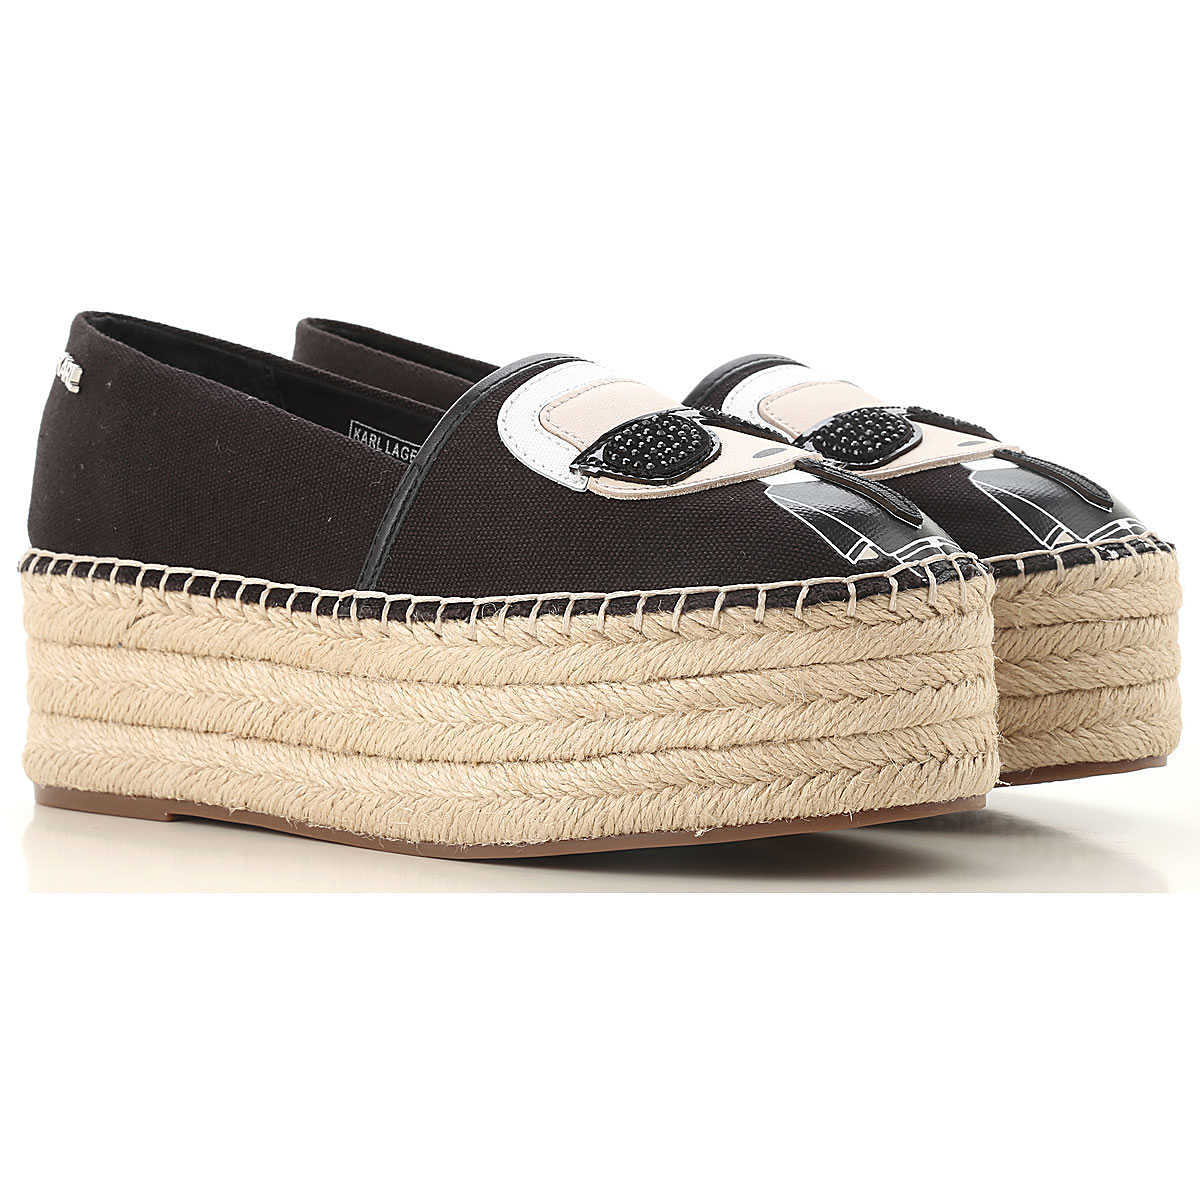 Karl Lagerfeld Wedges for Women Black Canada - GOOFASH - Womens HOUSE SHOES